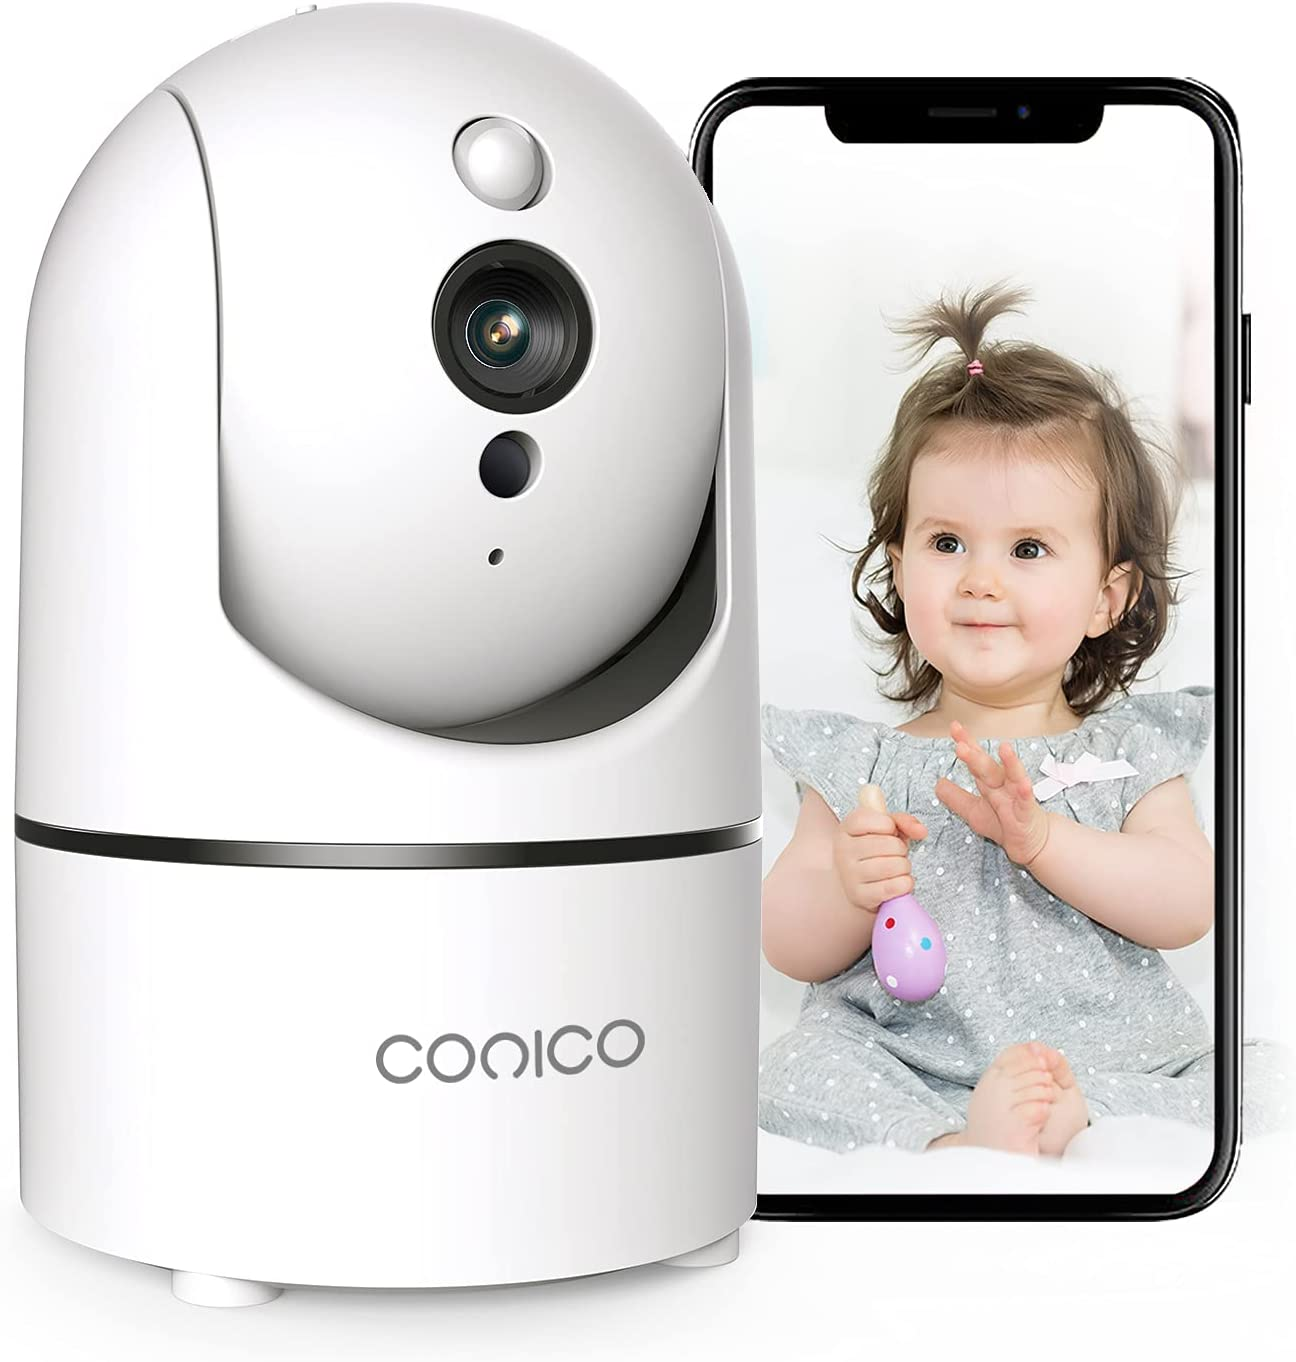 Conico Baby Monitor, 1080P Home Security Cameras with Sound Motion Detection 2-Way Audio Night Vision, Indoor Surveillance Camera for Pet/Nanny Monitoring, IP Camera Work with Alexa